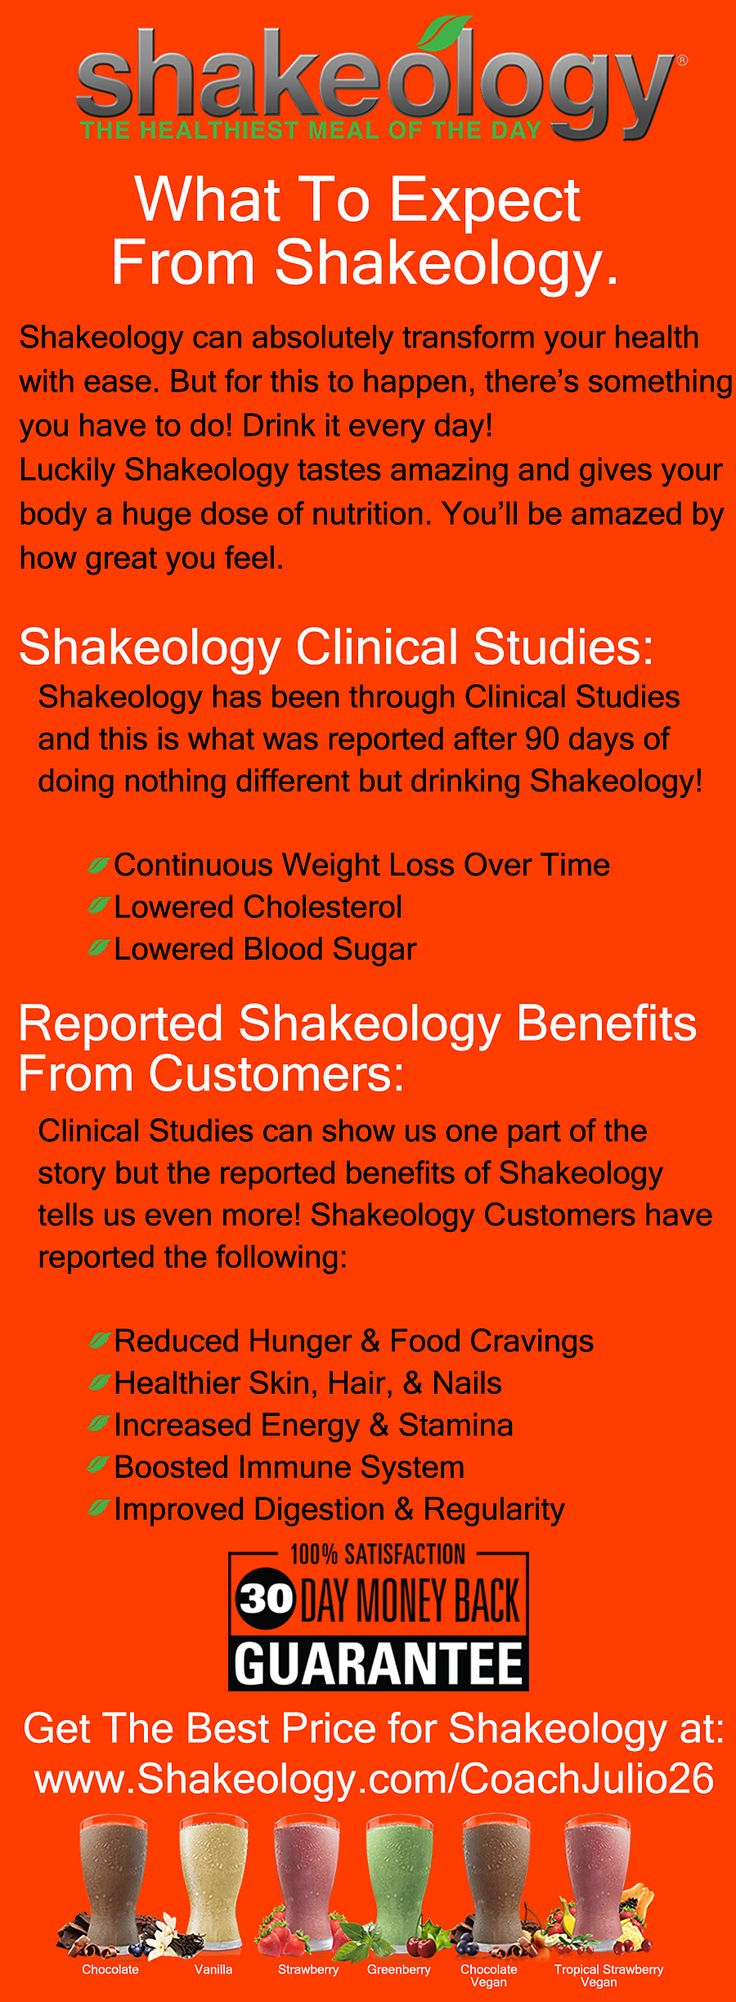 Shakeology has gone through Clinical Studies & people have shared their Shakeology benefits. To answer what is Shakeology, we find that Shakeology is health shake that is transforming people's lives! www.amylensing.com